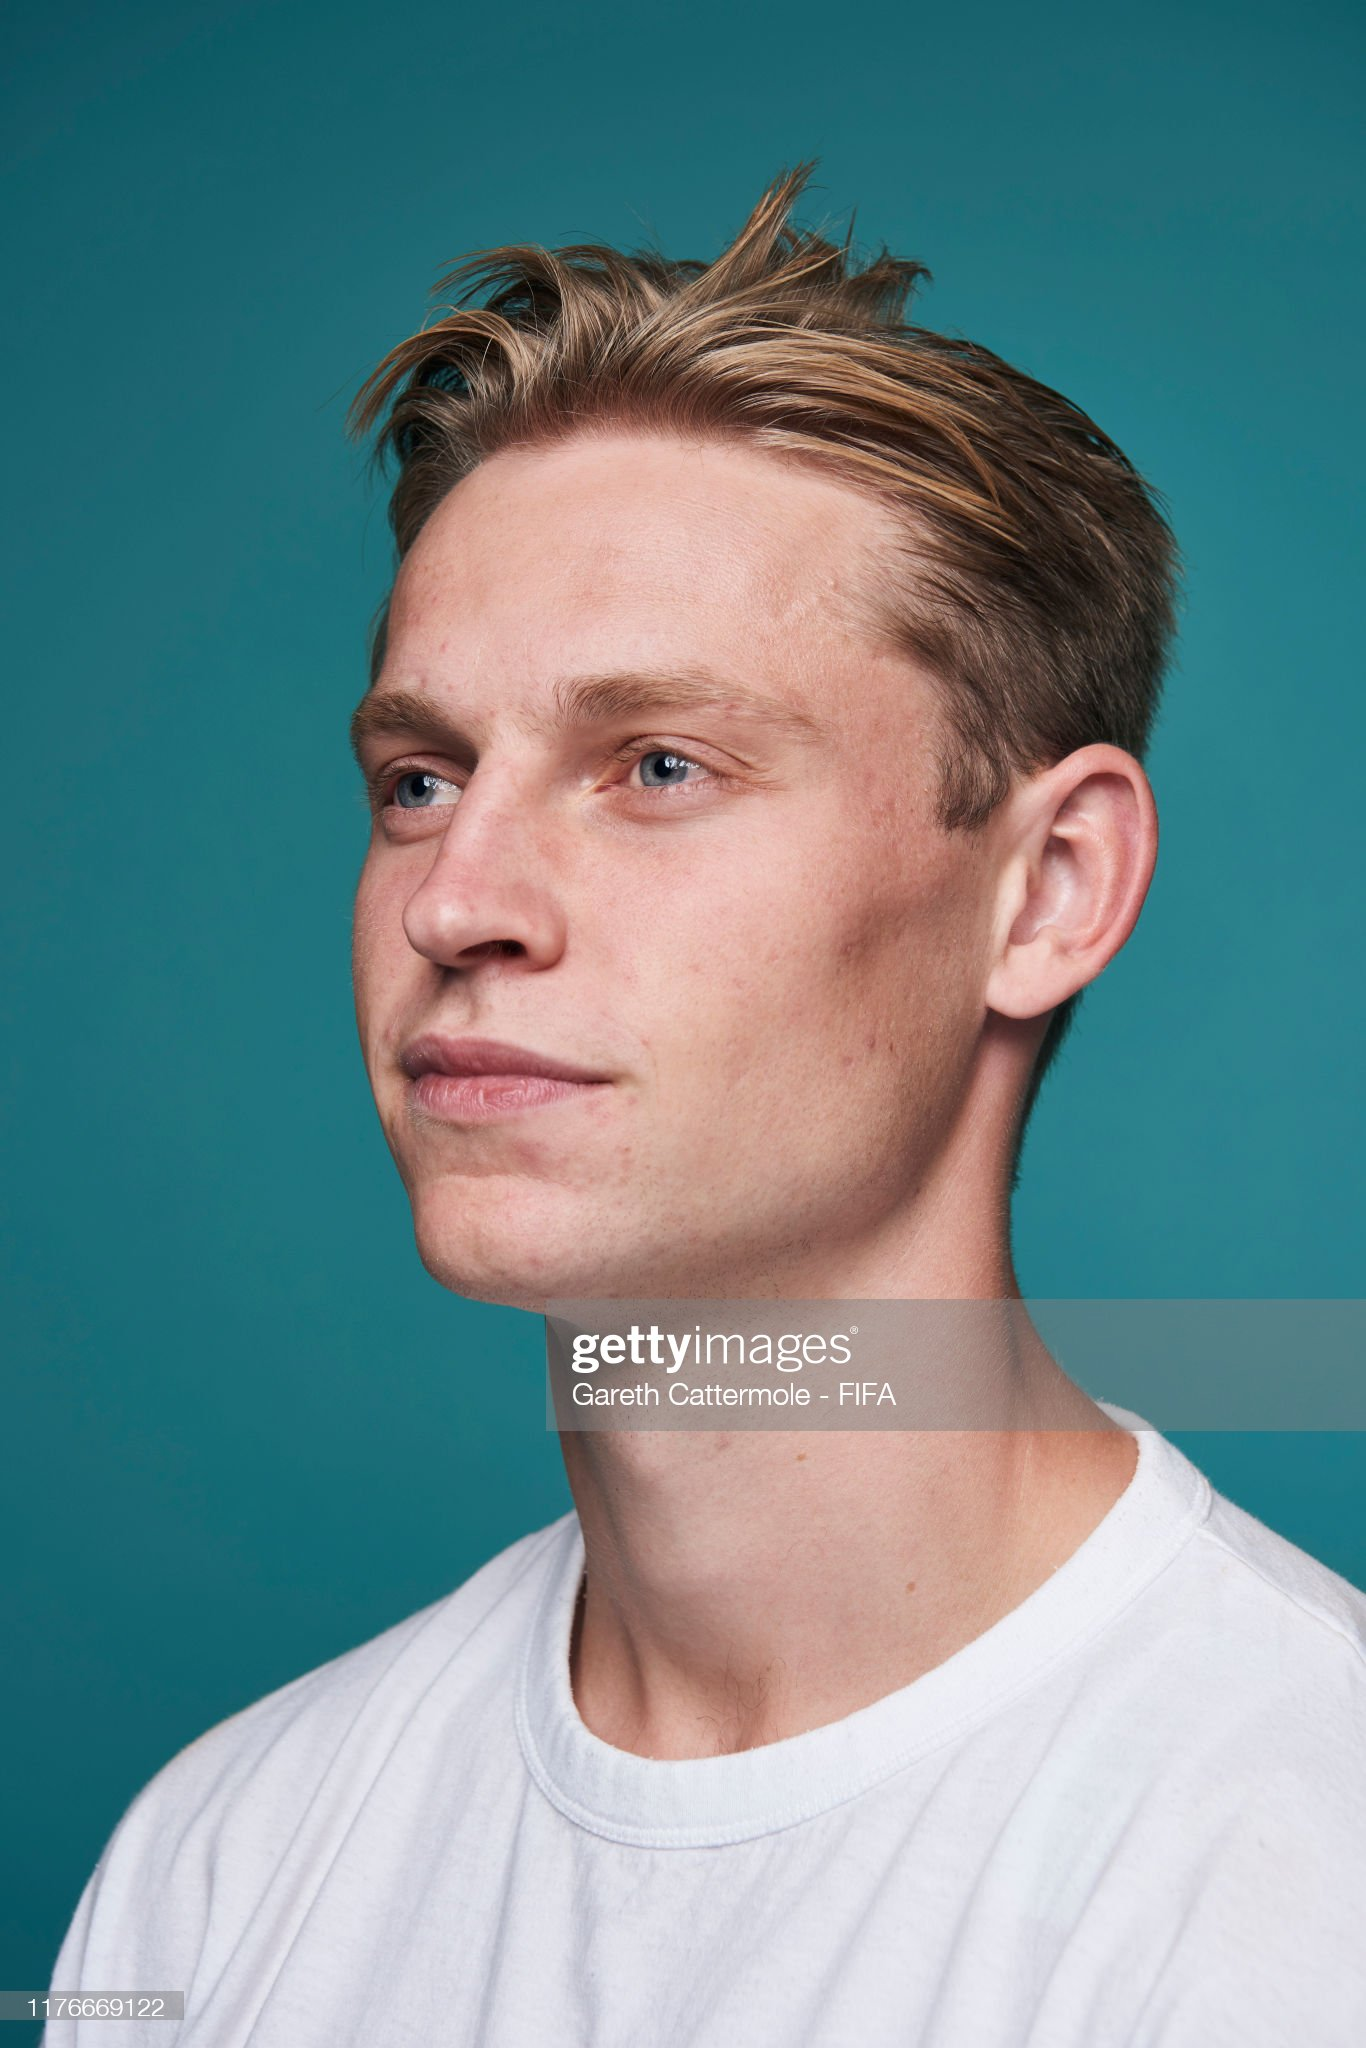 The Best FIFA Football Awards 2019 Fifpro-mens-world11-award-frenkie-de-jong-of-fc-barcelona-and-poses-picture-id1176669122?s=2048x2048